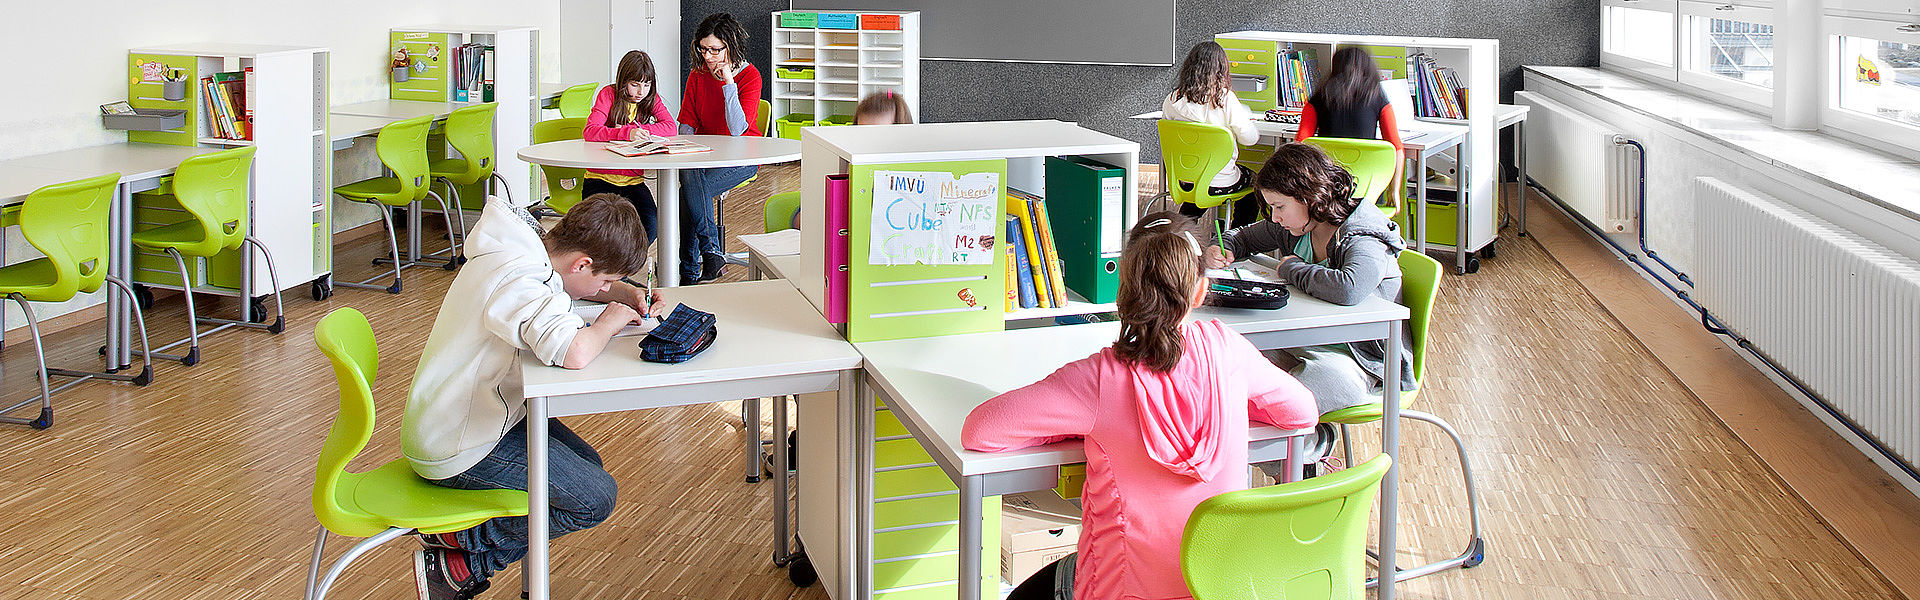 Image: Learning room with flexible furniture